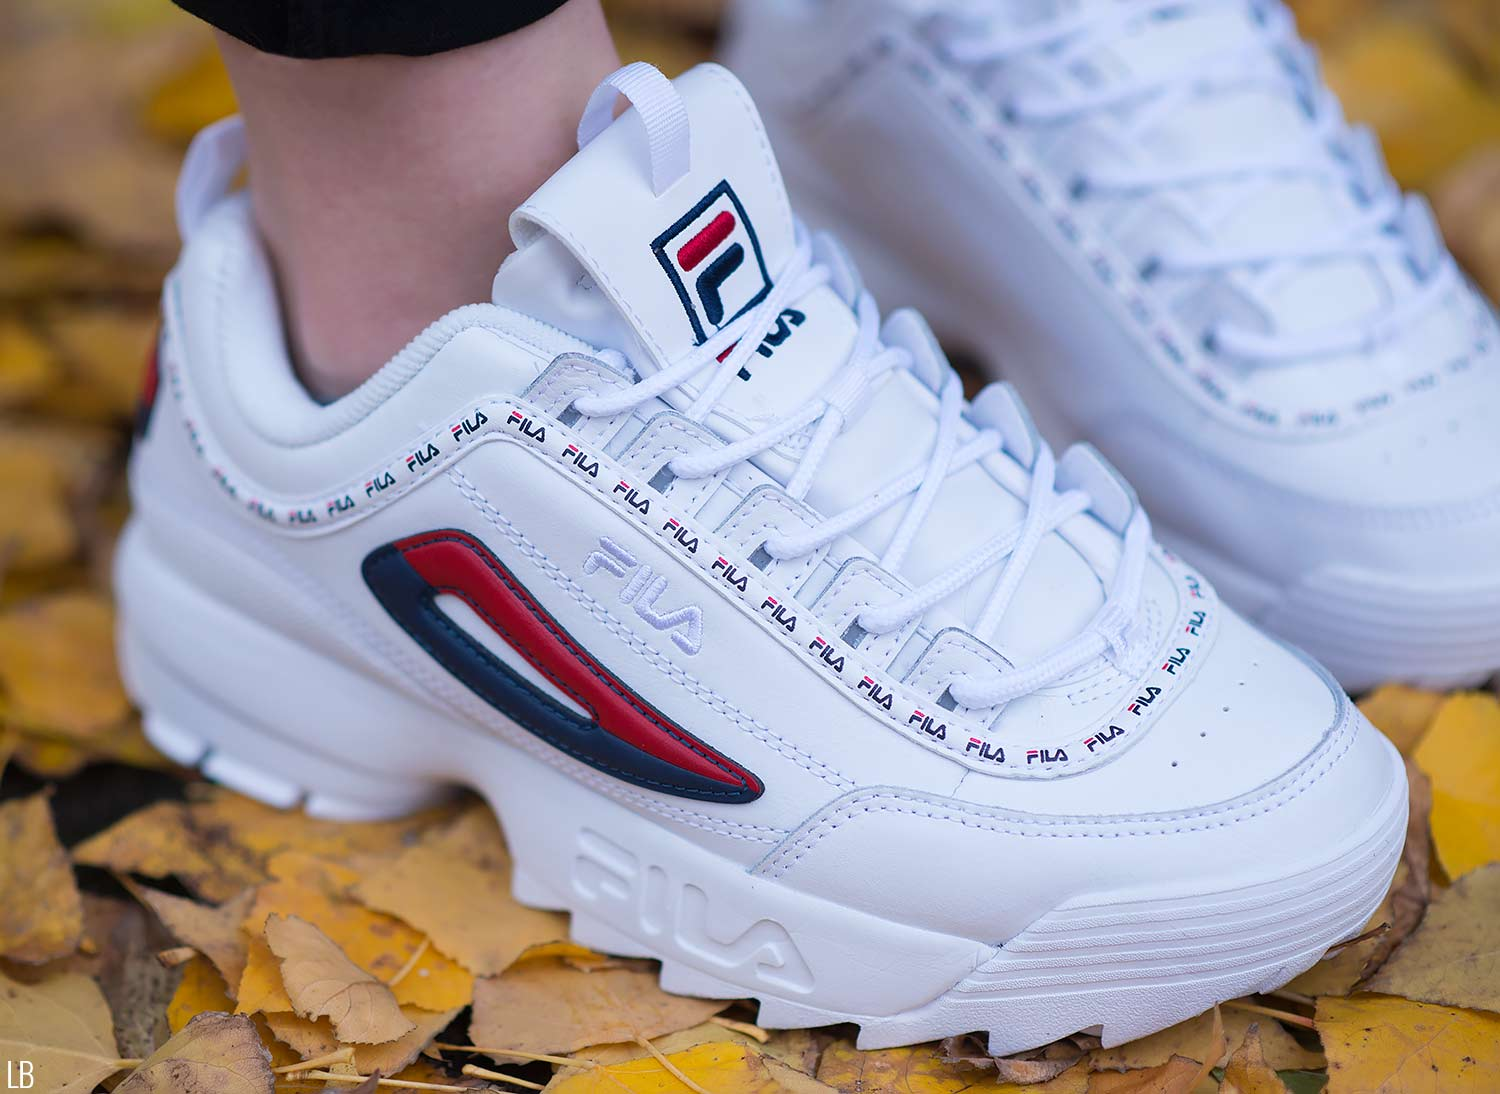 Fila Disruptor II Trainers Review | Raindrops of Sapphire